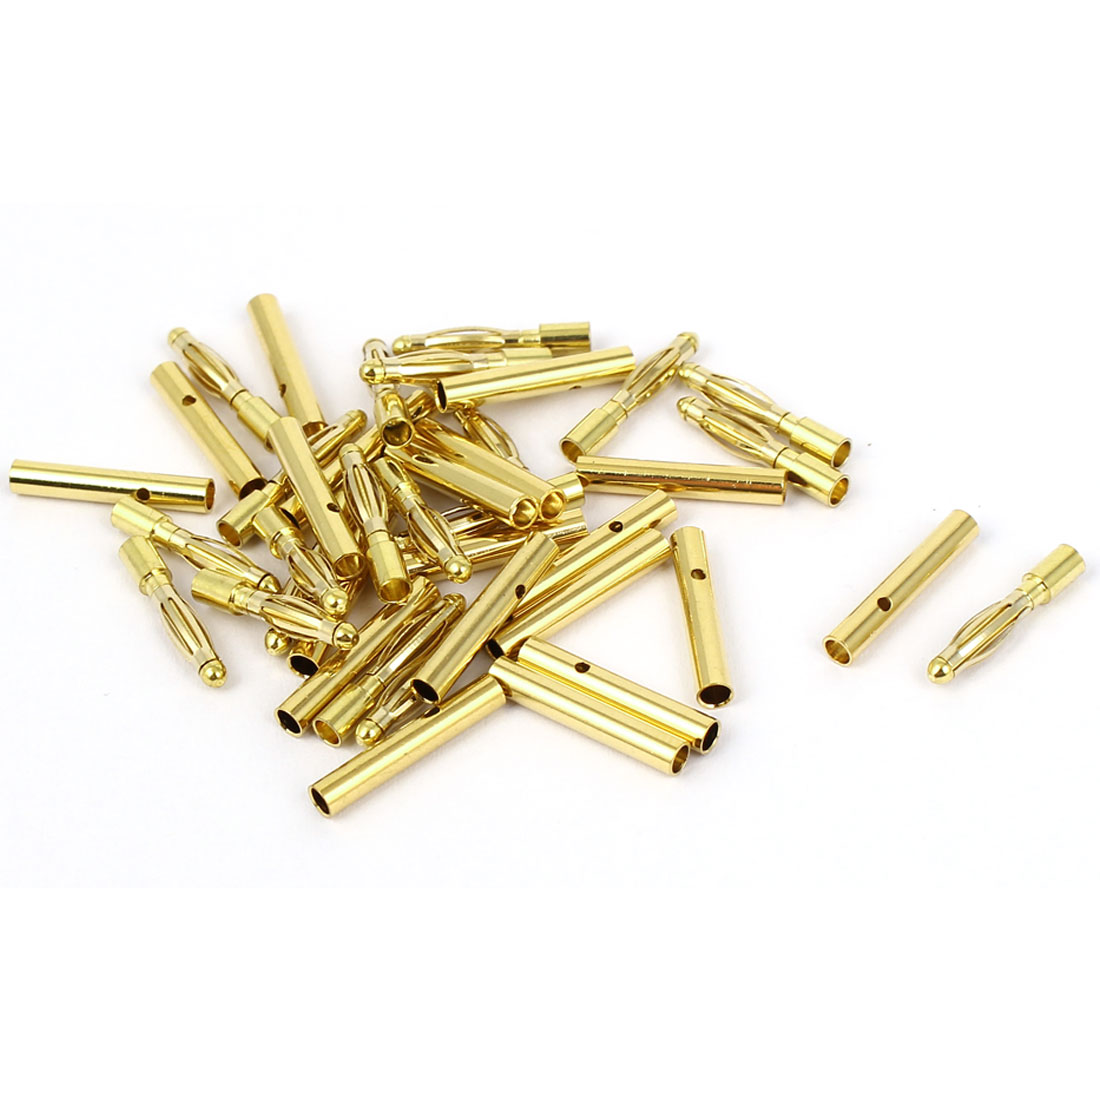 20 Pairs Gold Tone Metal RC Audio Video Phone 2mm Dia Banana Connectors